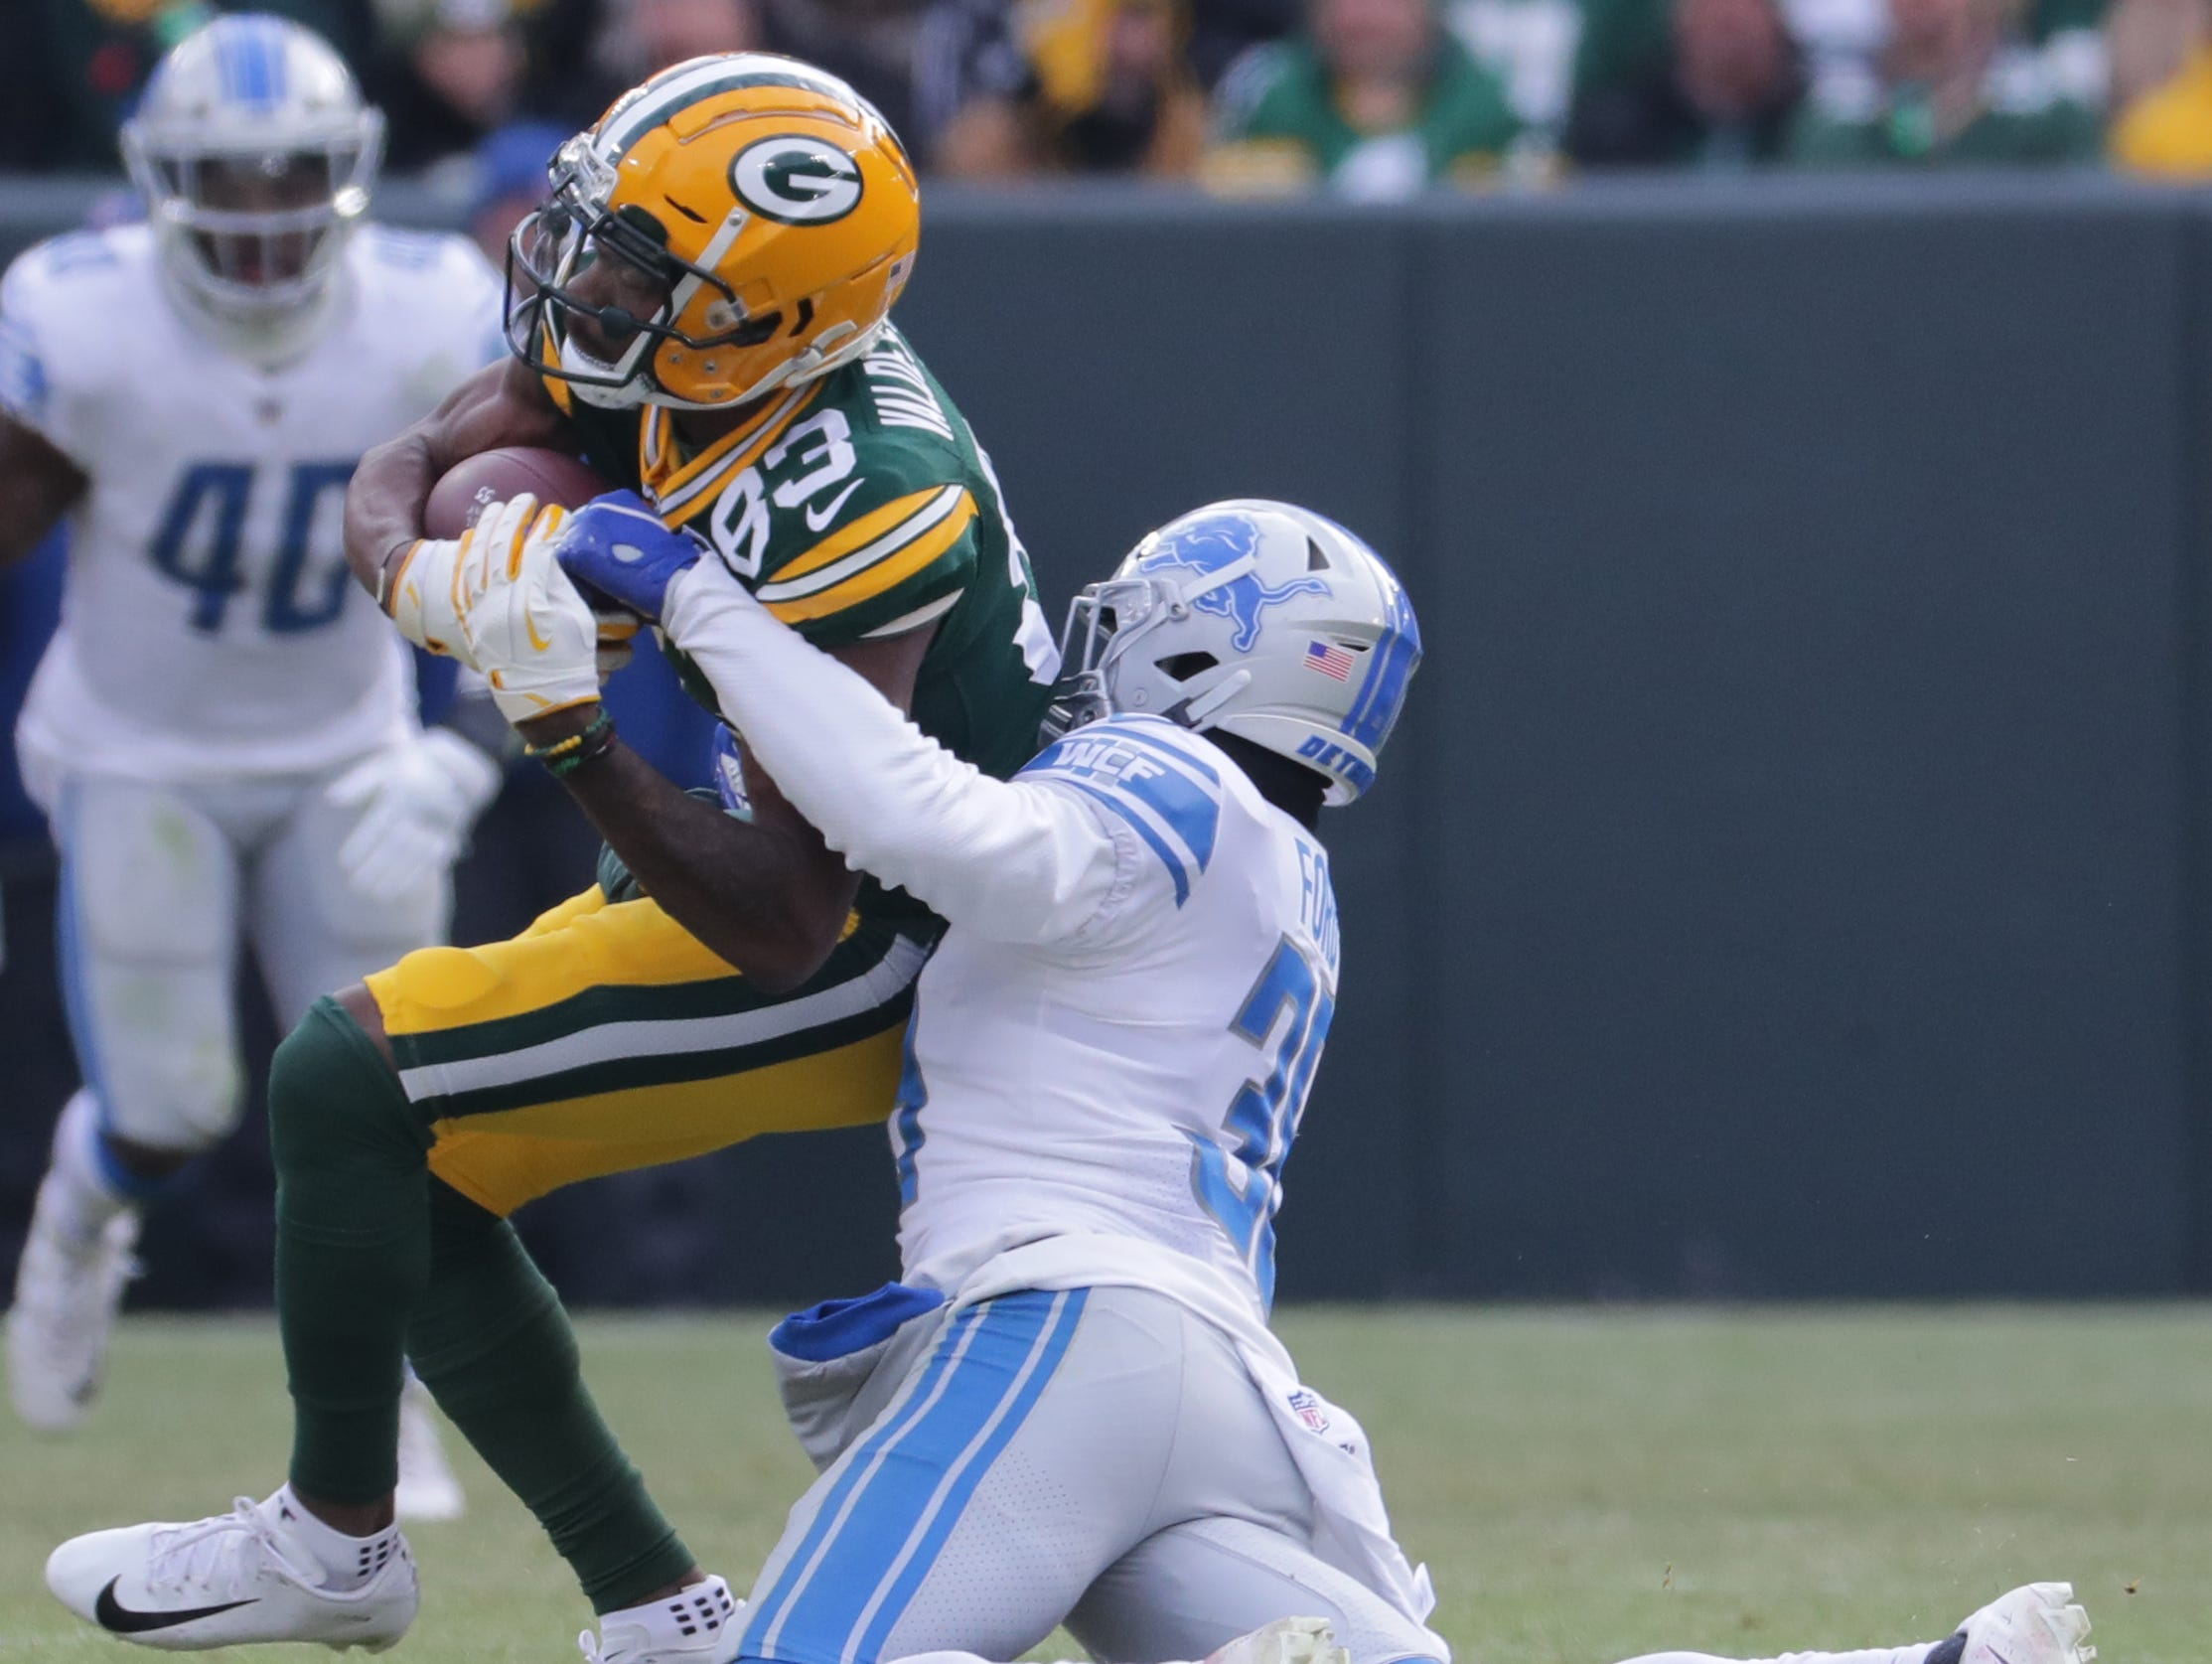 Green Bay Packers wide receiver Marquez Valdes-Scantling (83) makes. Catch for a first before being tackled by Detroit Lions cornerback Mike Ford (38) during the second quarter of their game Sunday, December 30, 2018 at Lambeau Field in Green Bay, Wis. The Detroit Lions beat the Green Bay Packers 31-0.  MARK HOFFMAN/MILWAUKEE JOURNAL SENTINEL